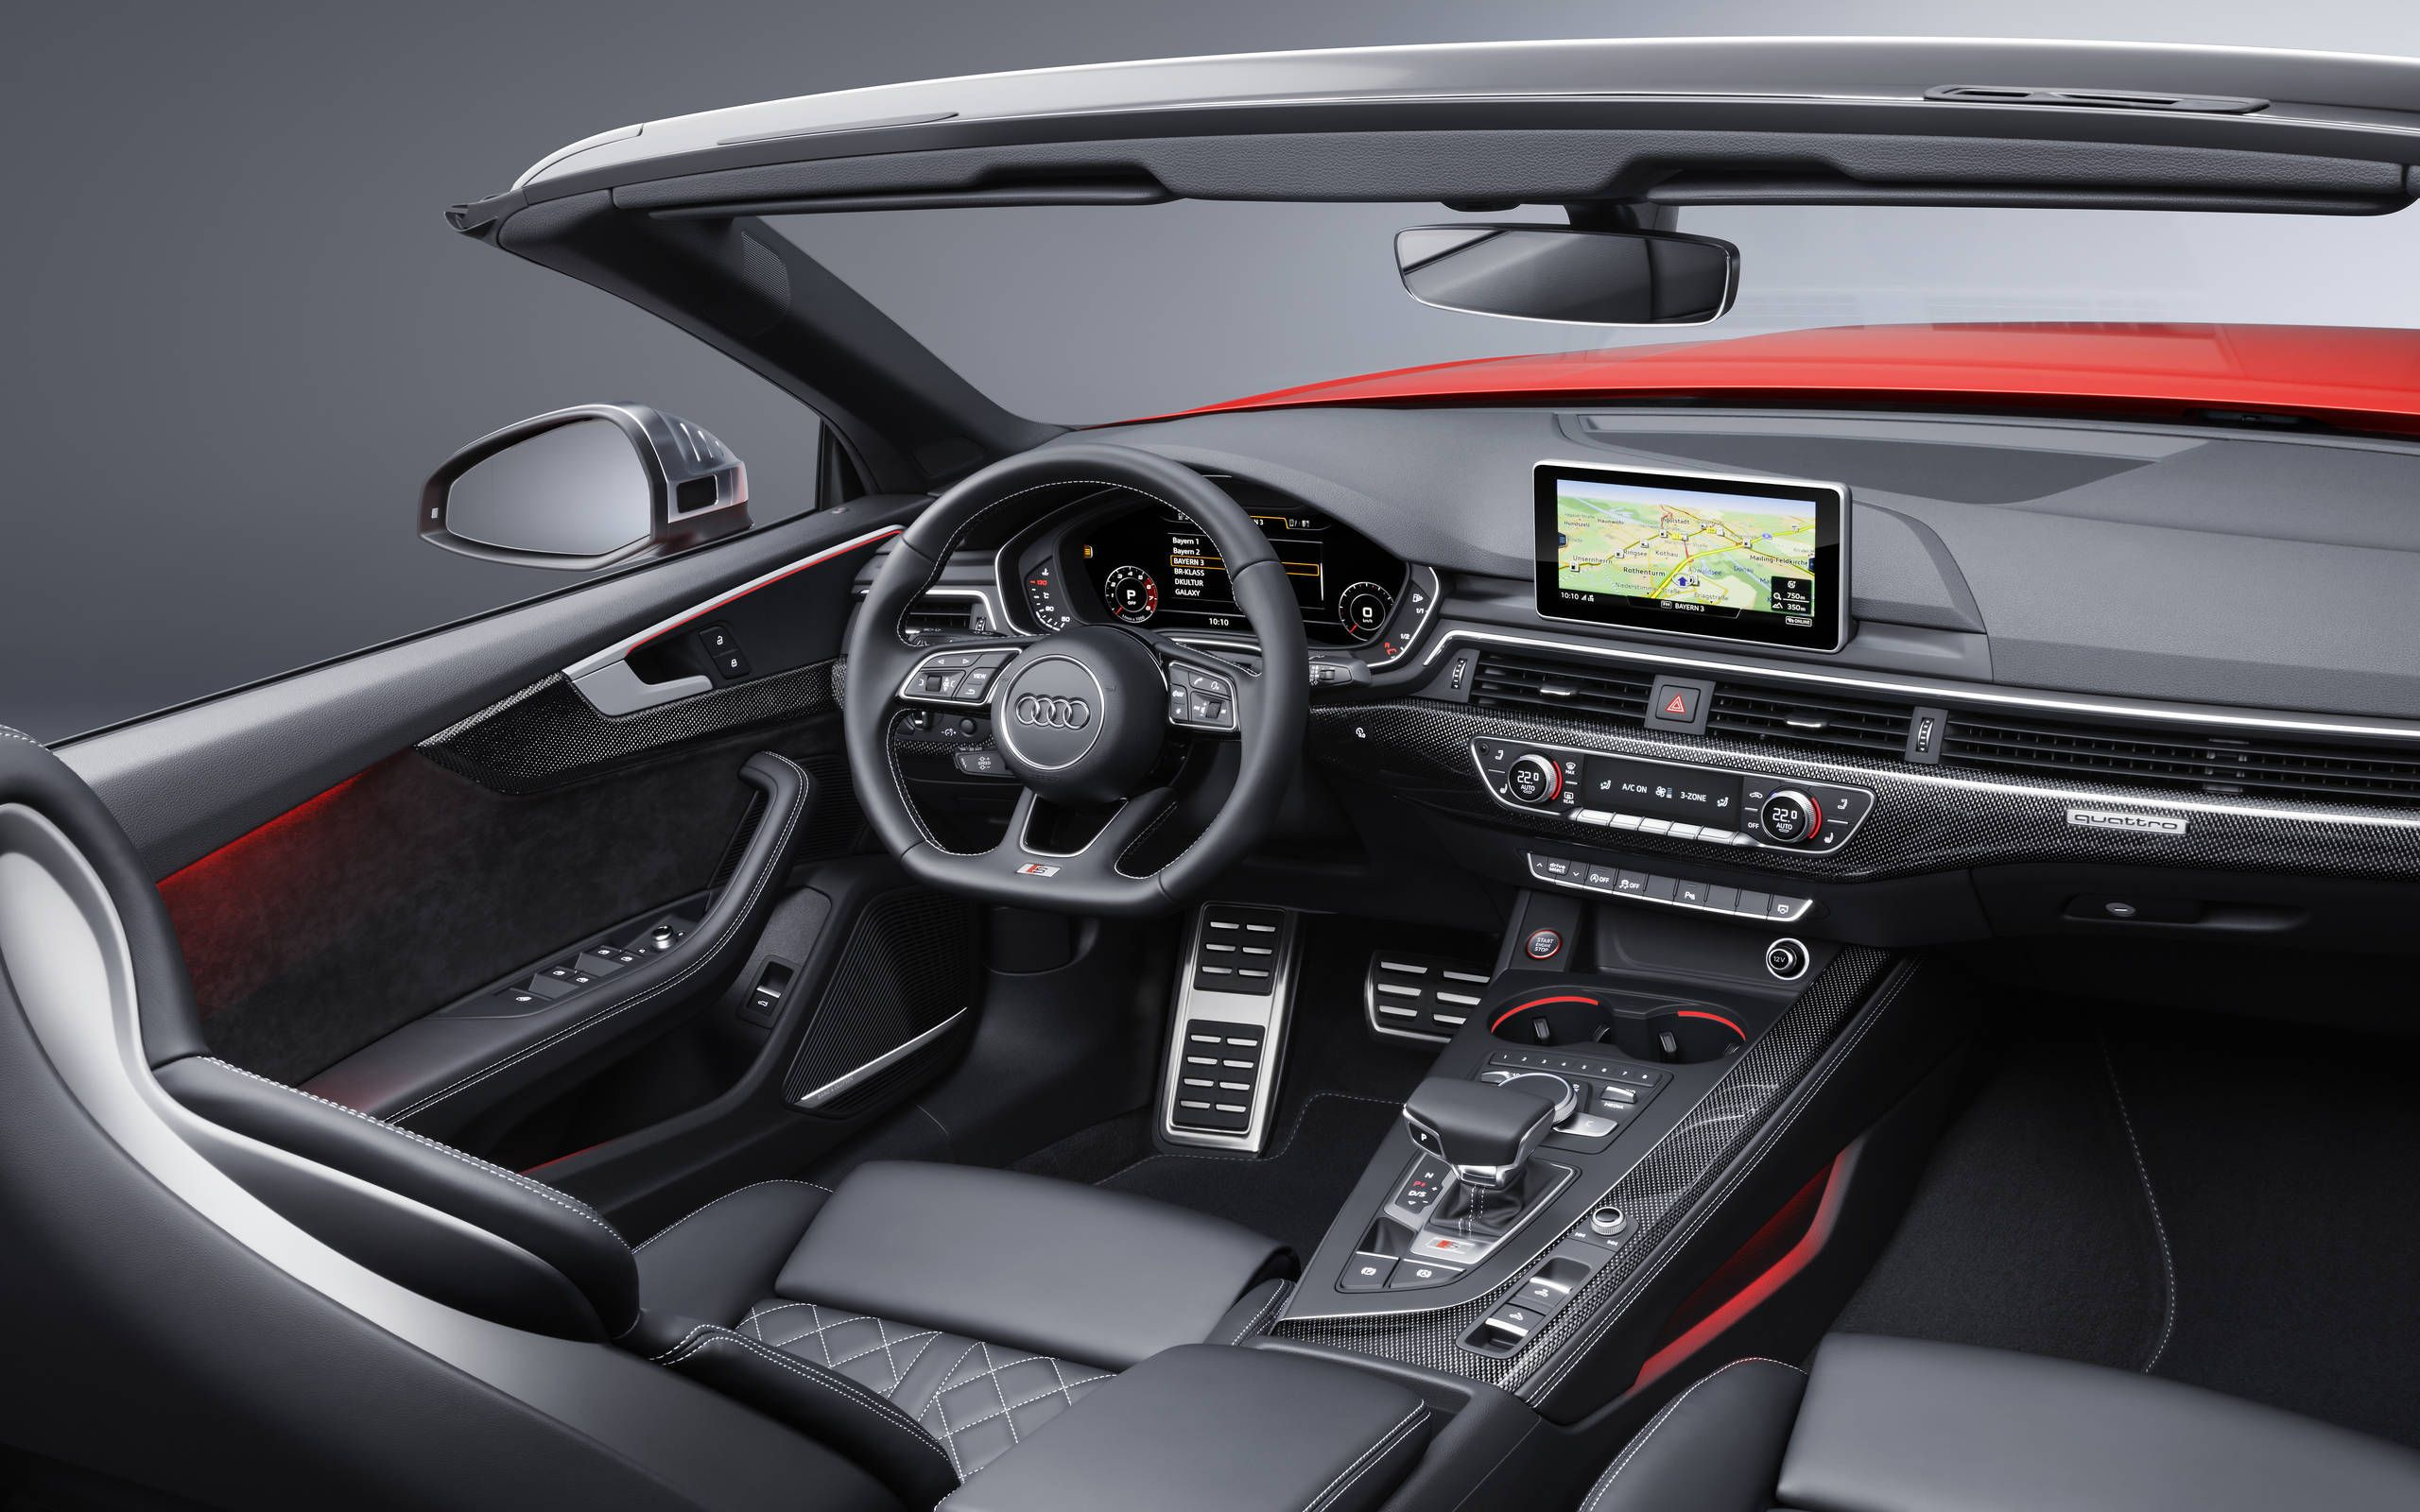 2018 Audi S5 Cabriolet Essentials Can A Car Be Too Well Executed